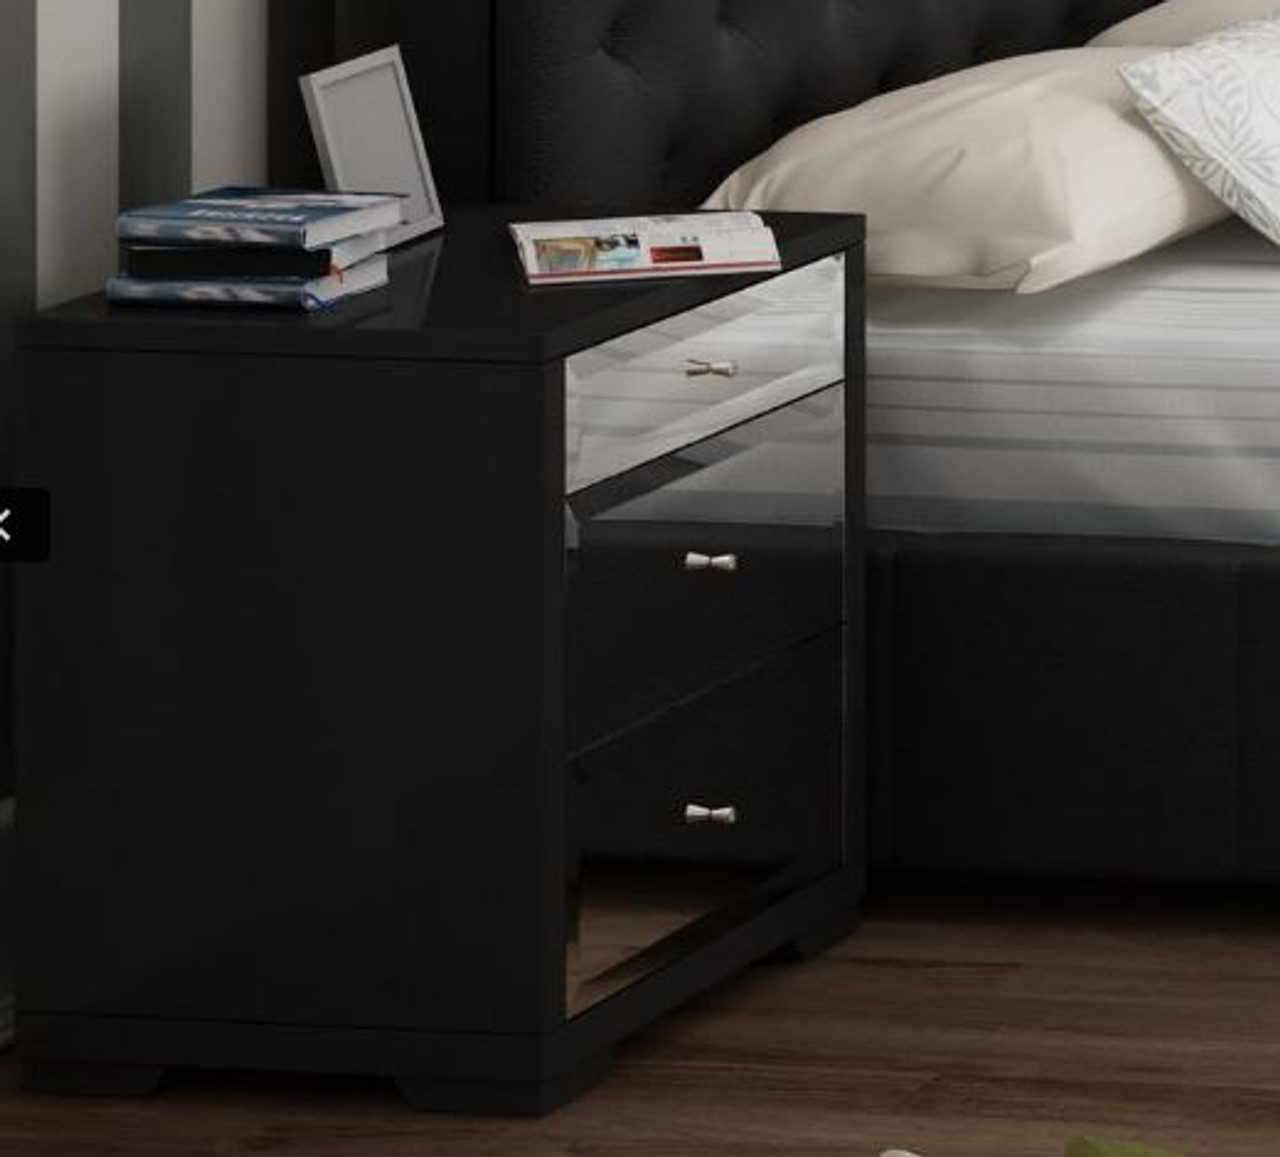 Ashford Large Bedside Table With Mirrored Fronts 3 5 14 20 21 18 26 Smoke Mirror Black Gloss My Furniture Store And Bedding Super Australia